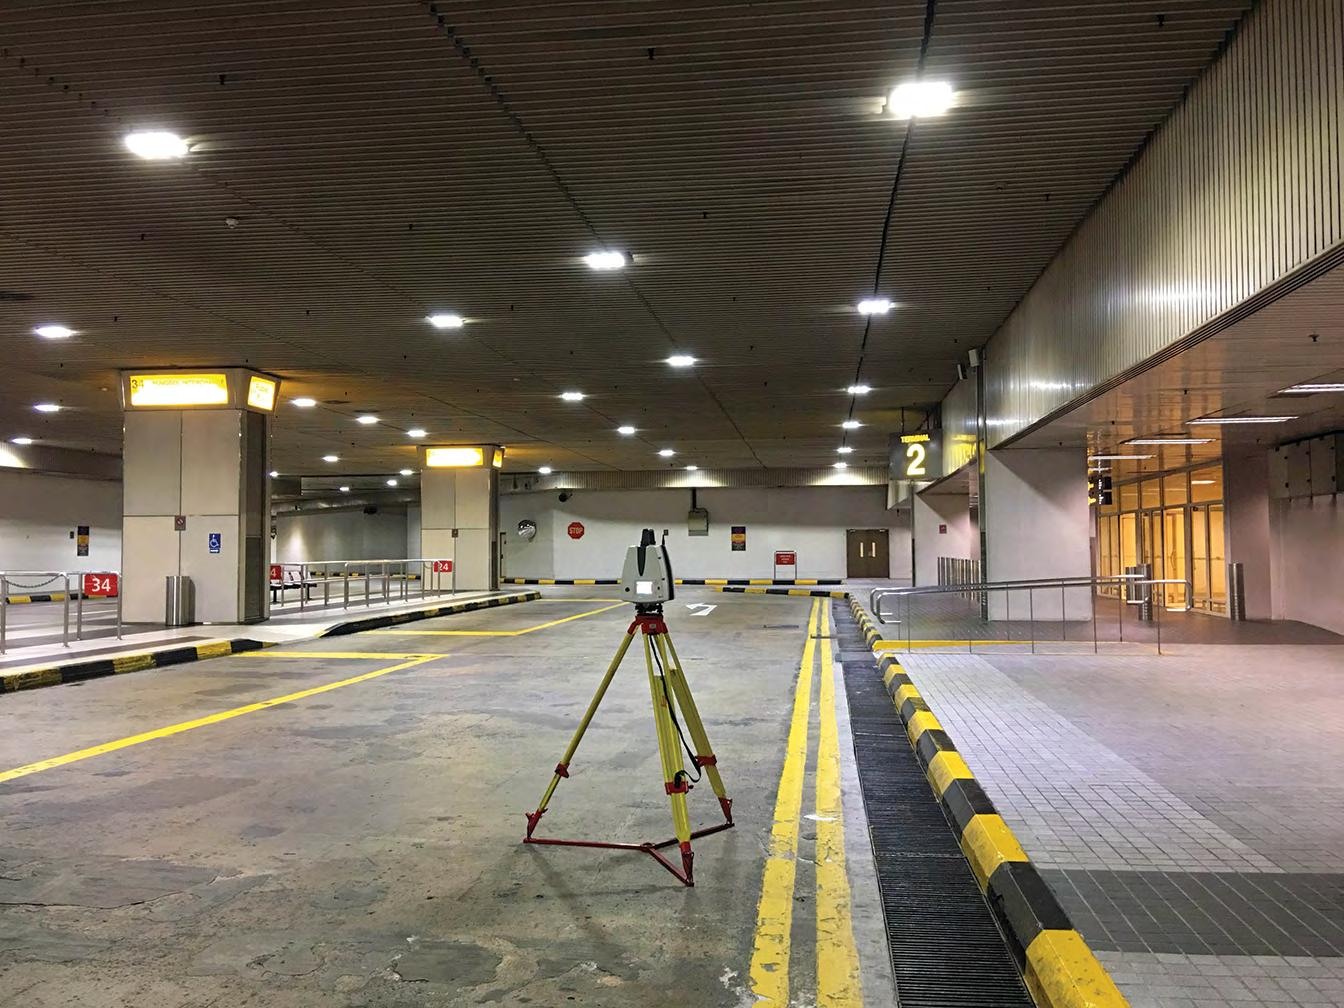 Page 42 of Capturing 'reality' in one of the world's busiest airports The creation of an information-rich 3D model will assist in the operation of Changi Airport Terminal 2